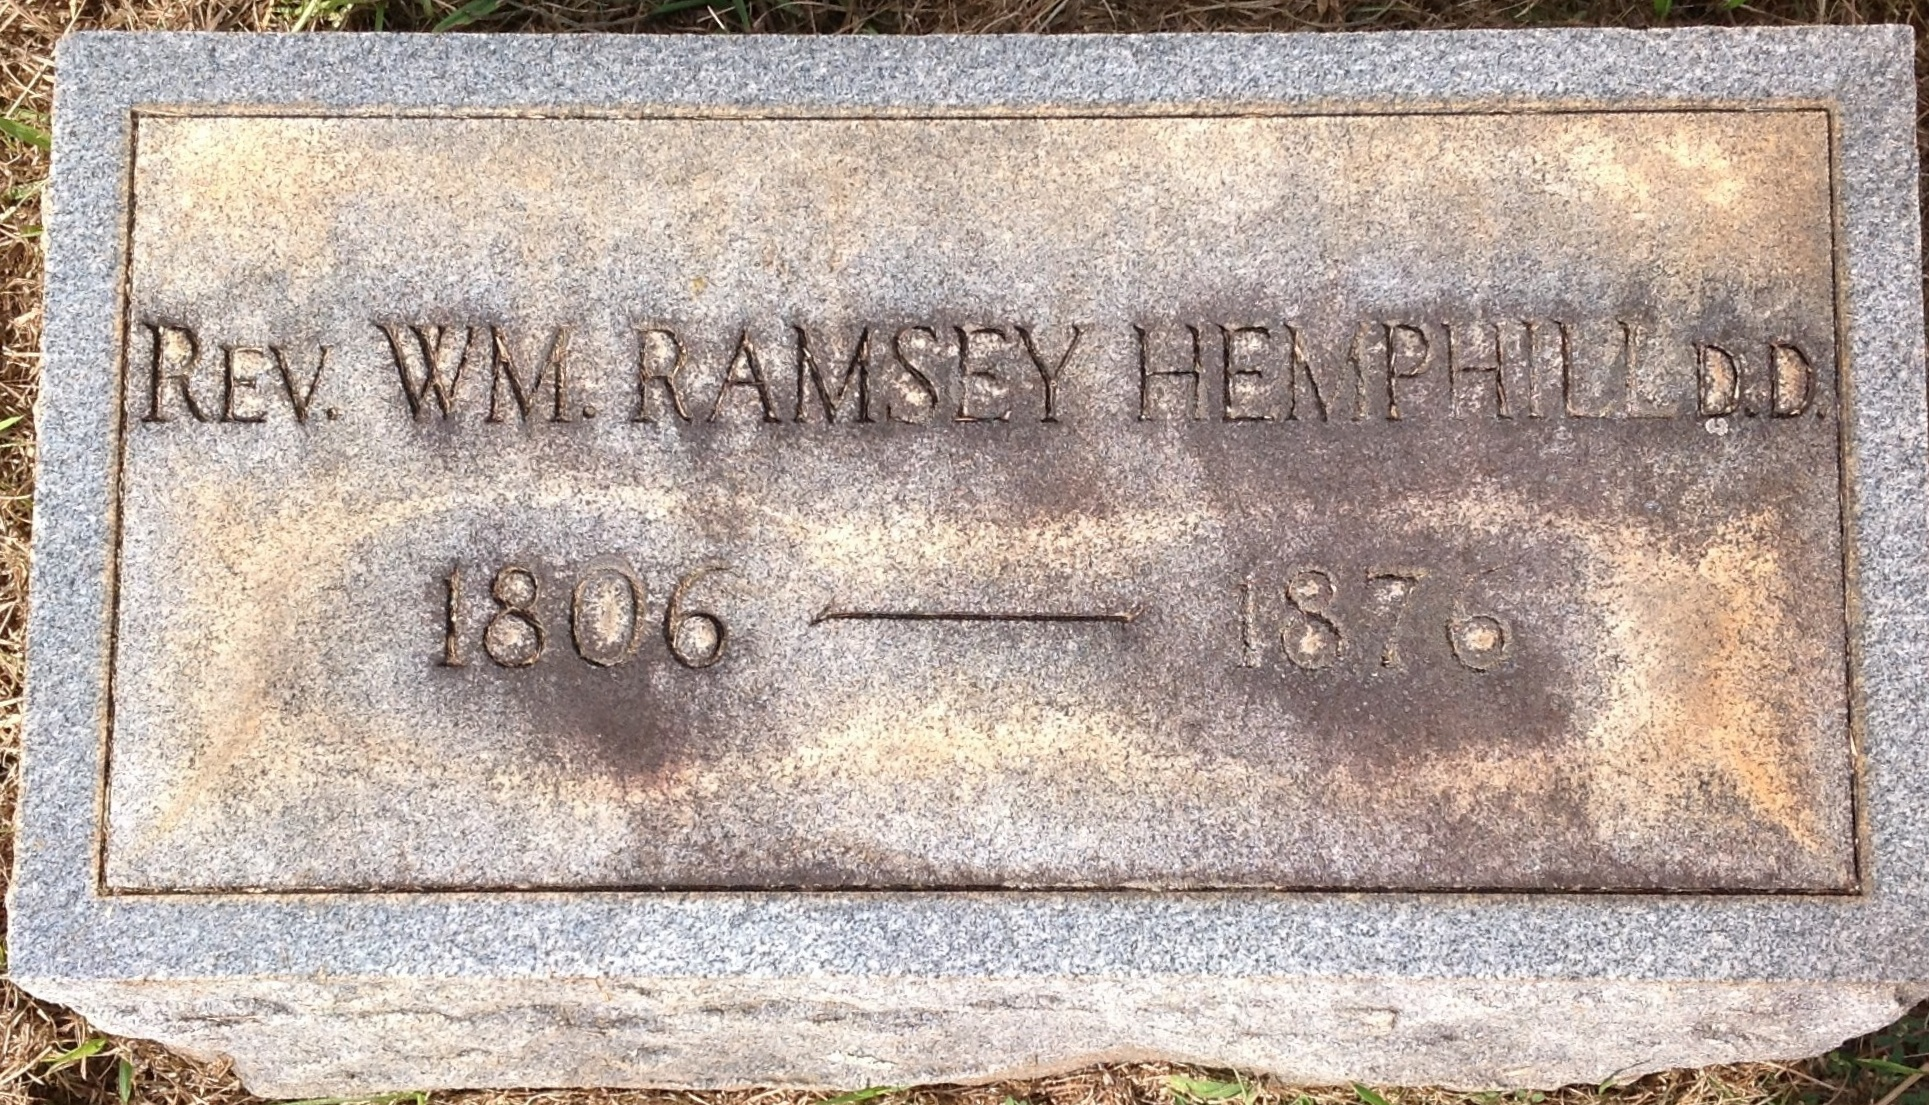 William Ramsey Hemphill is buried at Due West ARP Church Cemetery, Due West, South Carolina.